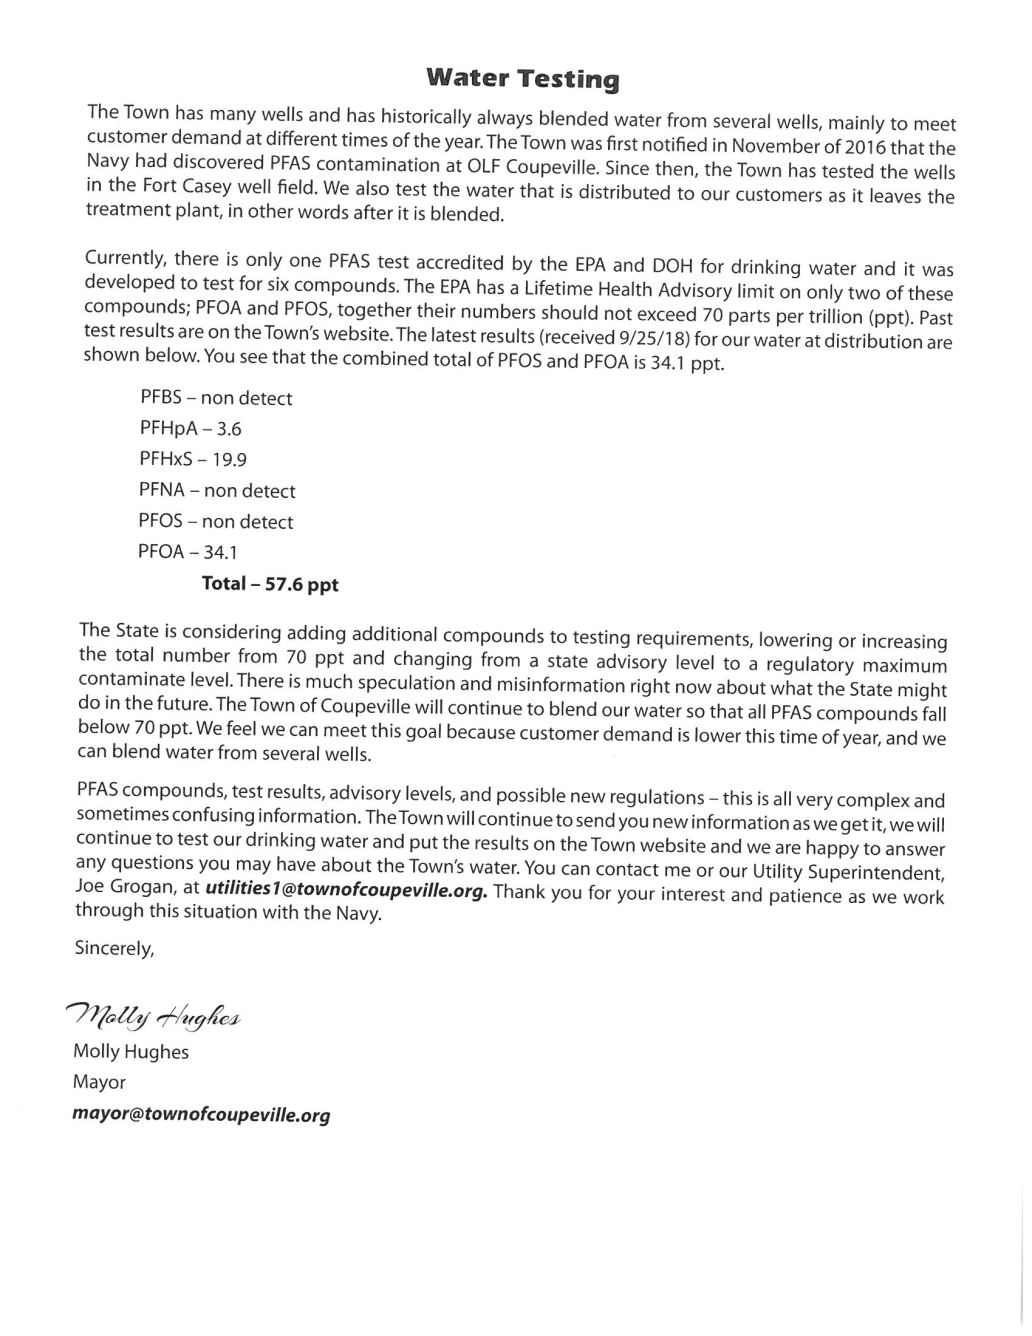 Water Update Letter SEPT 18_Page_2